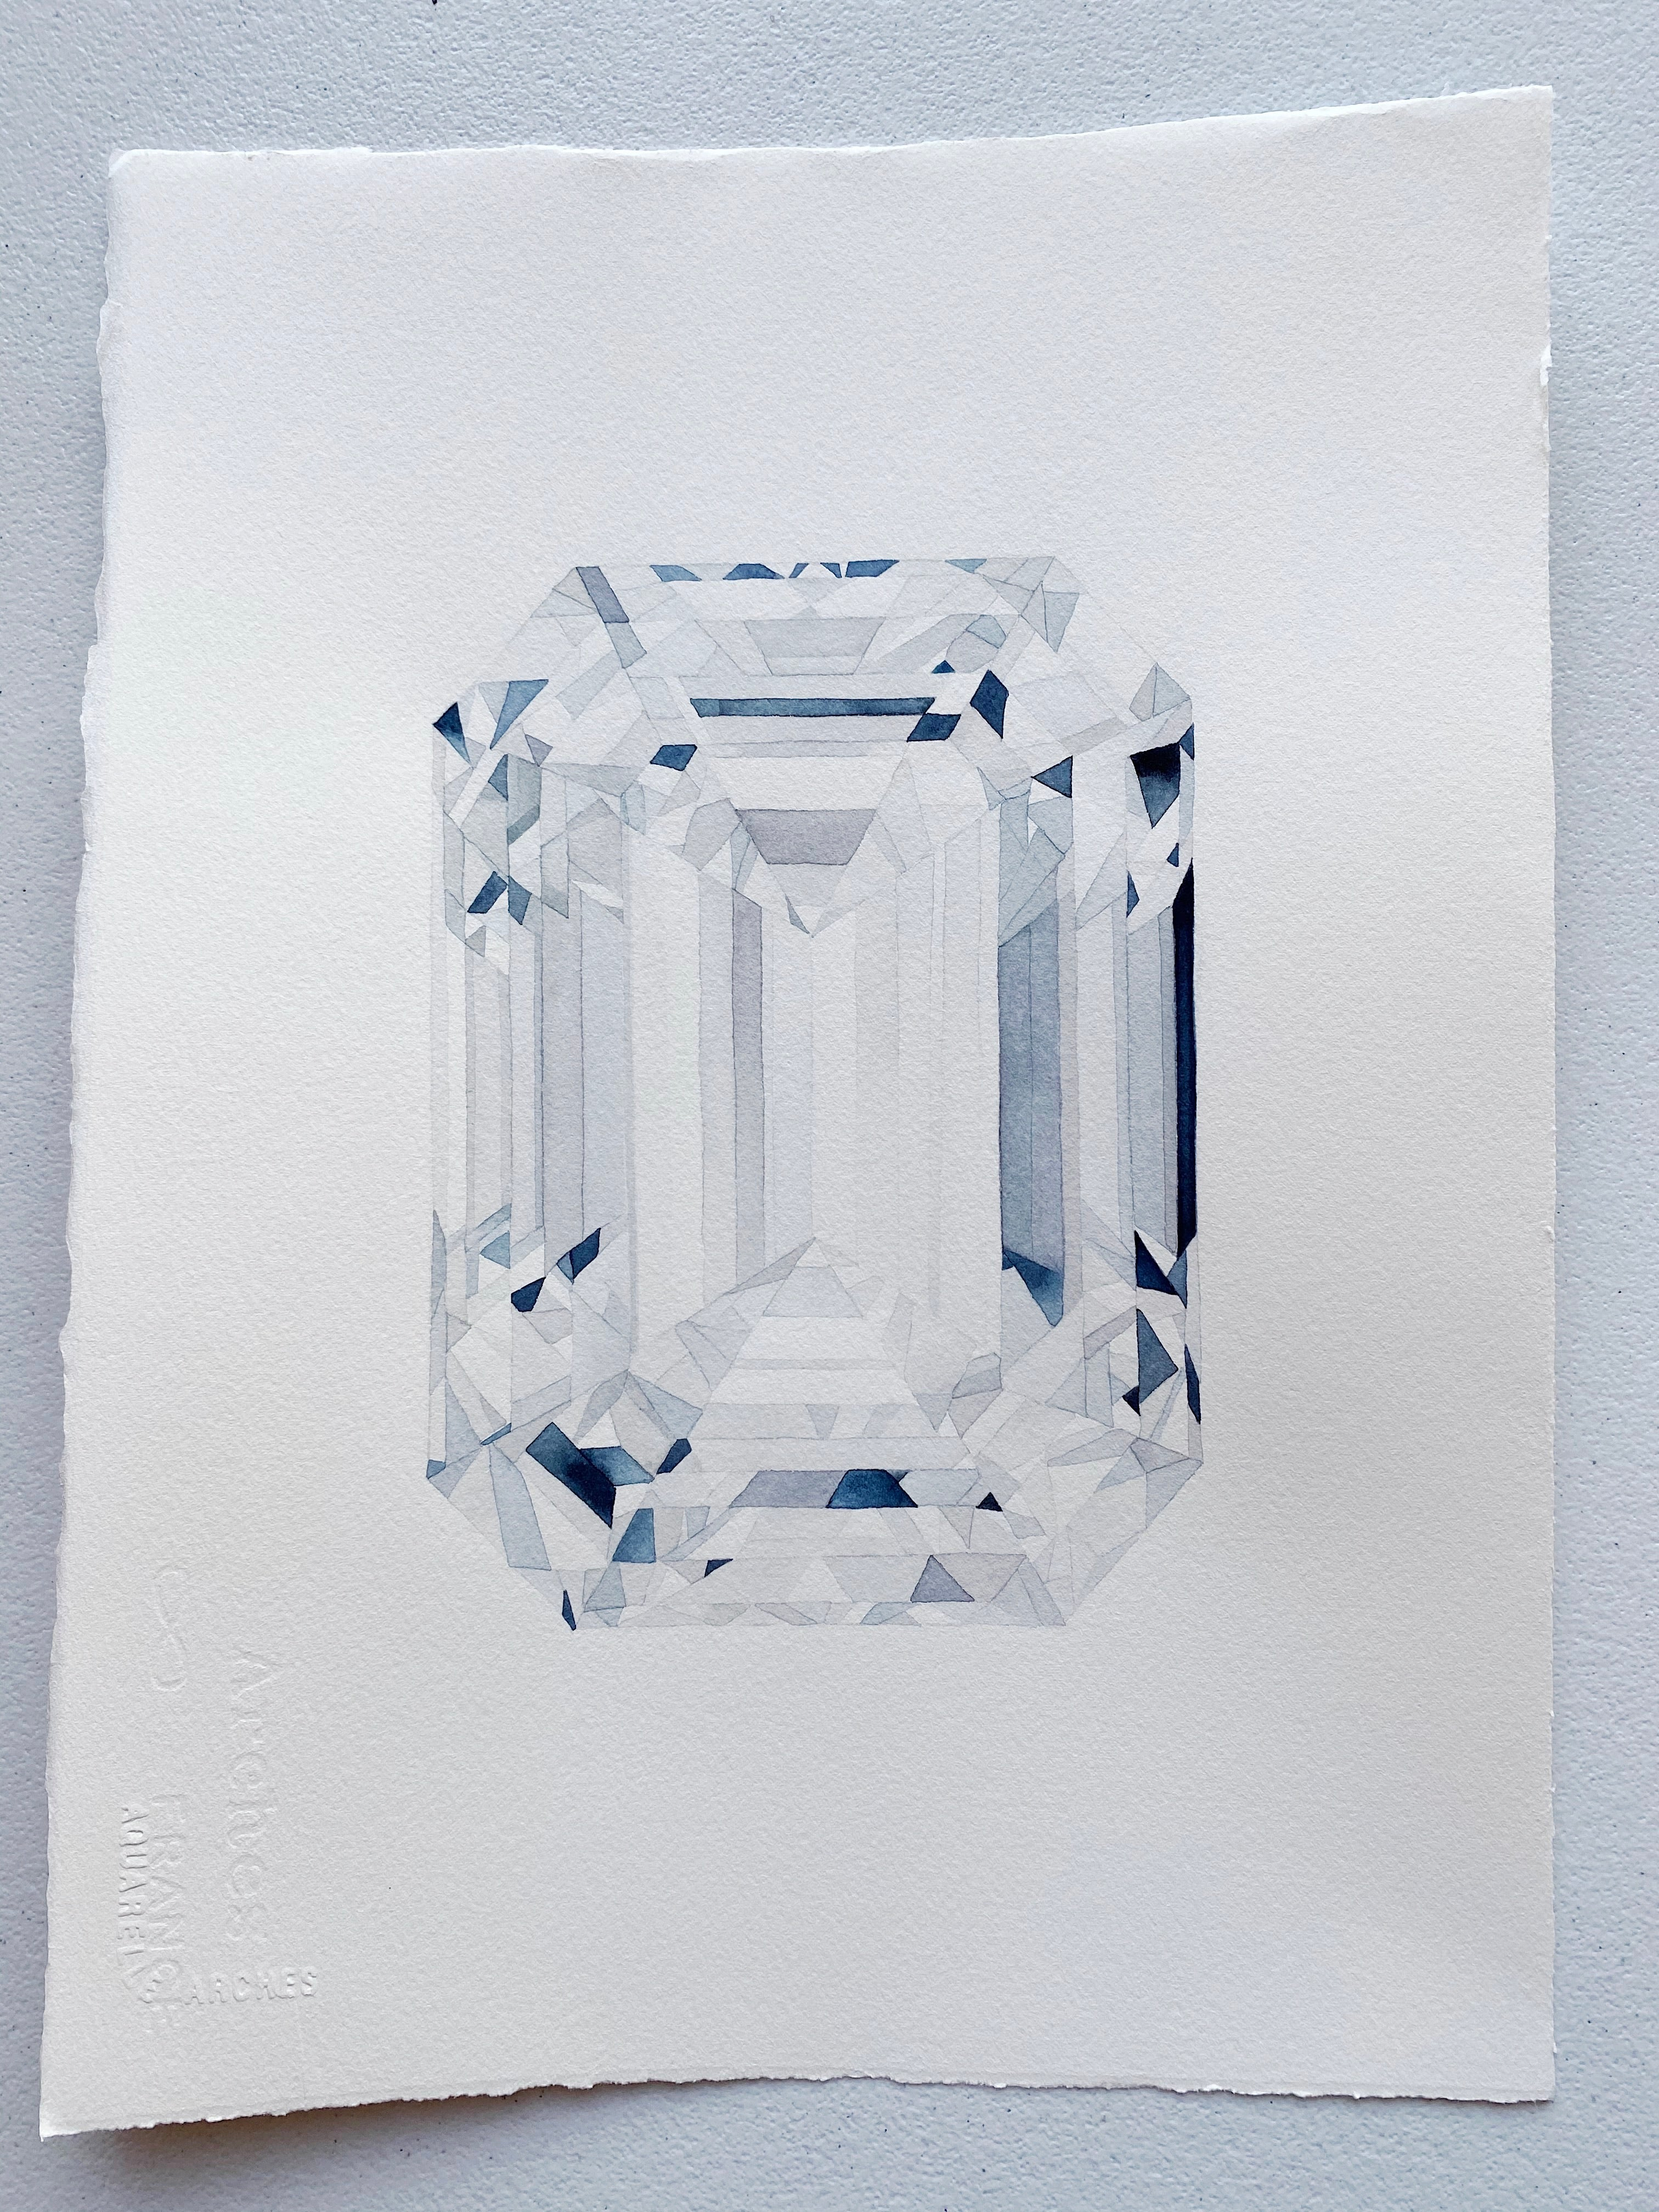 Original Painting - Watercolor Emerald Cut Diamond Painting 11x15 inches